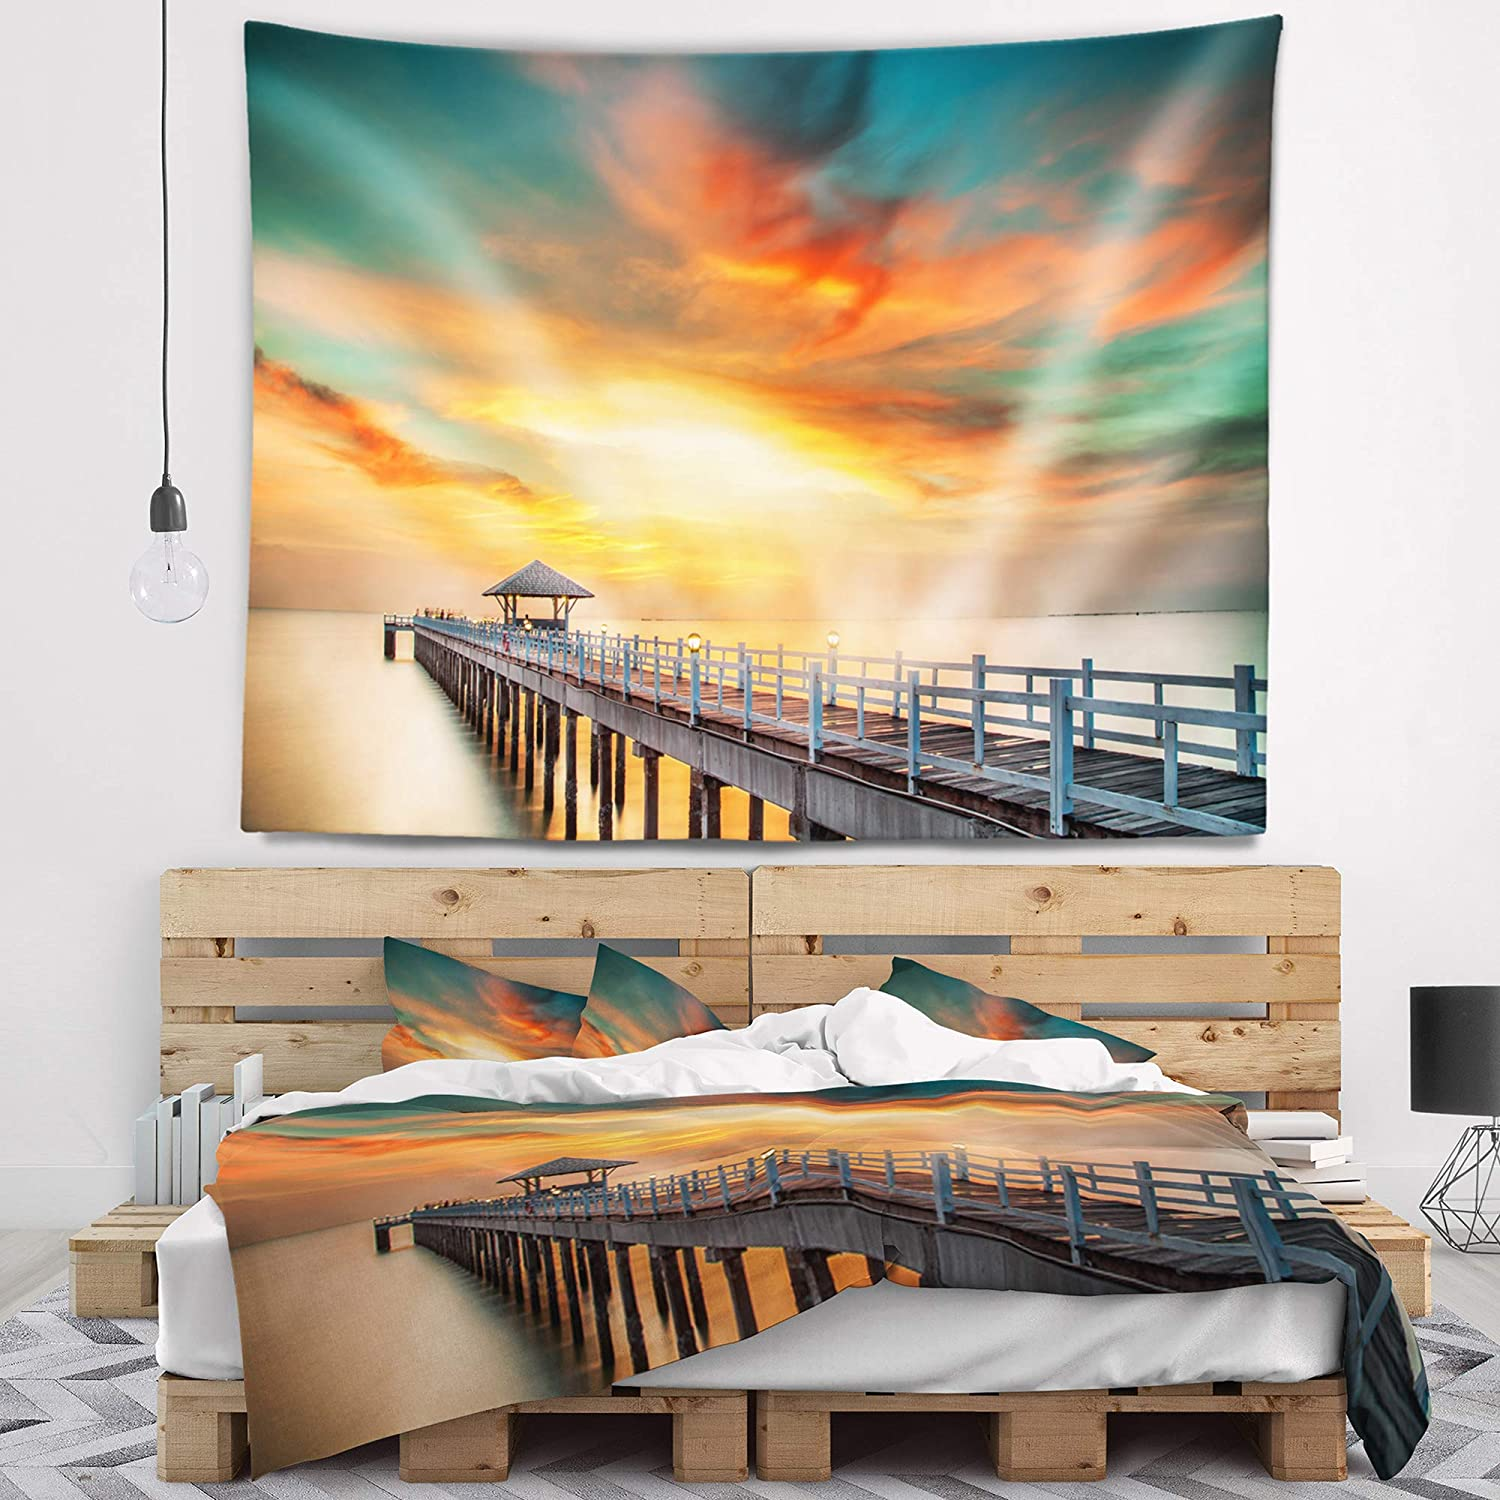 Designart TAP10576-80-68  Wooden Colorful Sky Sea Bridge Blanket D/écor Art for Home and Office Wall Tapestry x Large Created On Lightweight Polyester Fabric 80 in x 68 in